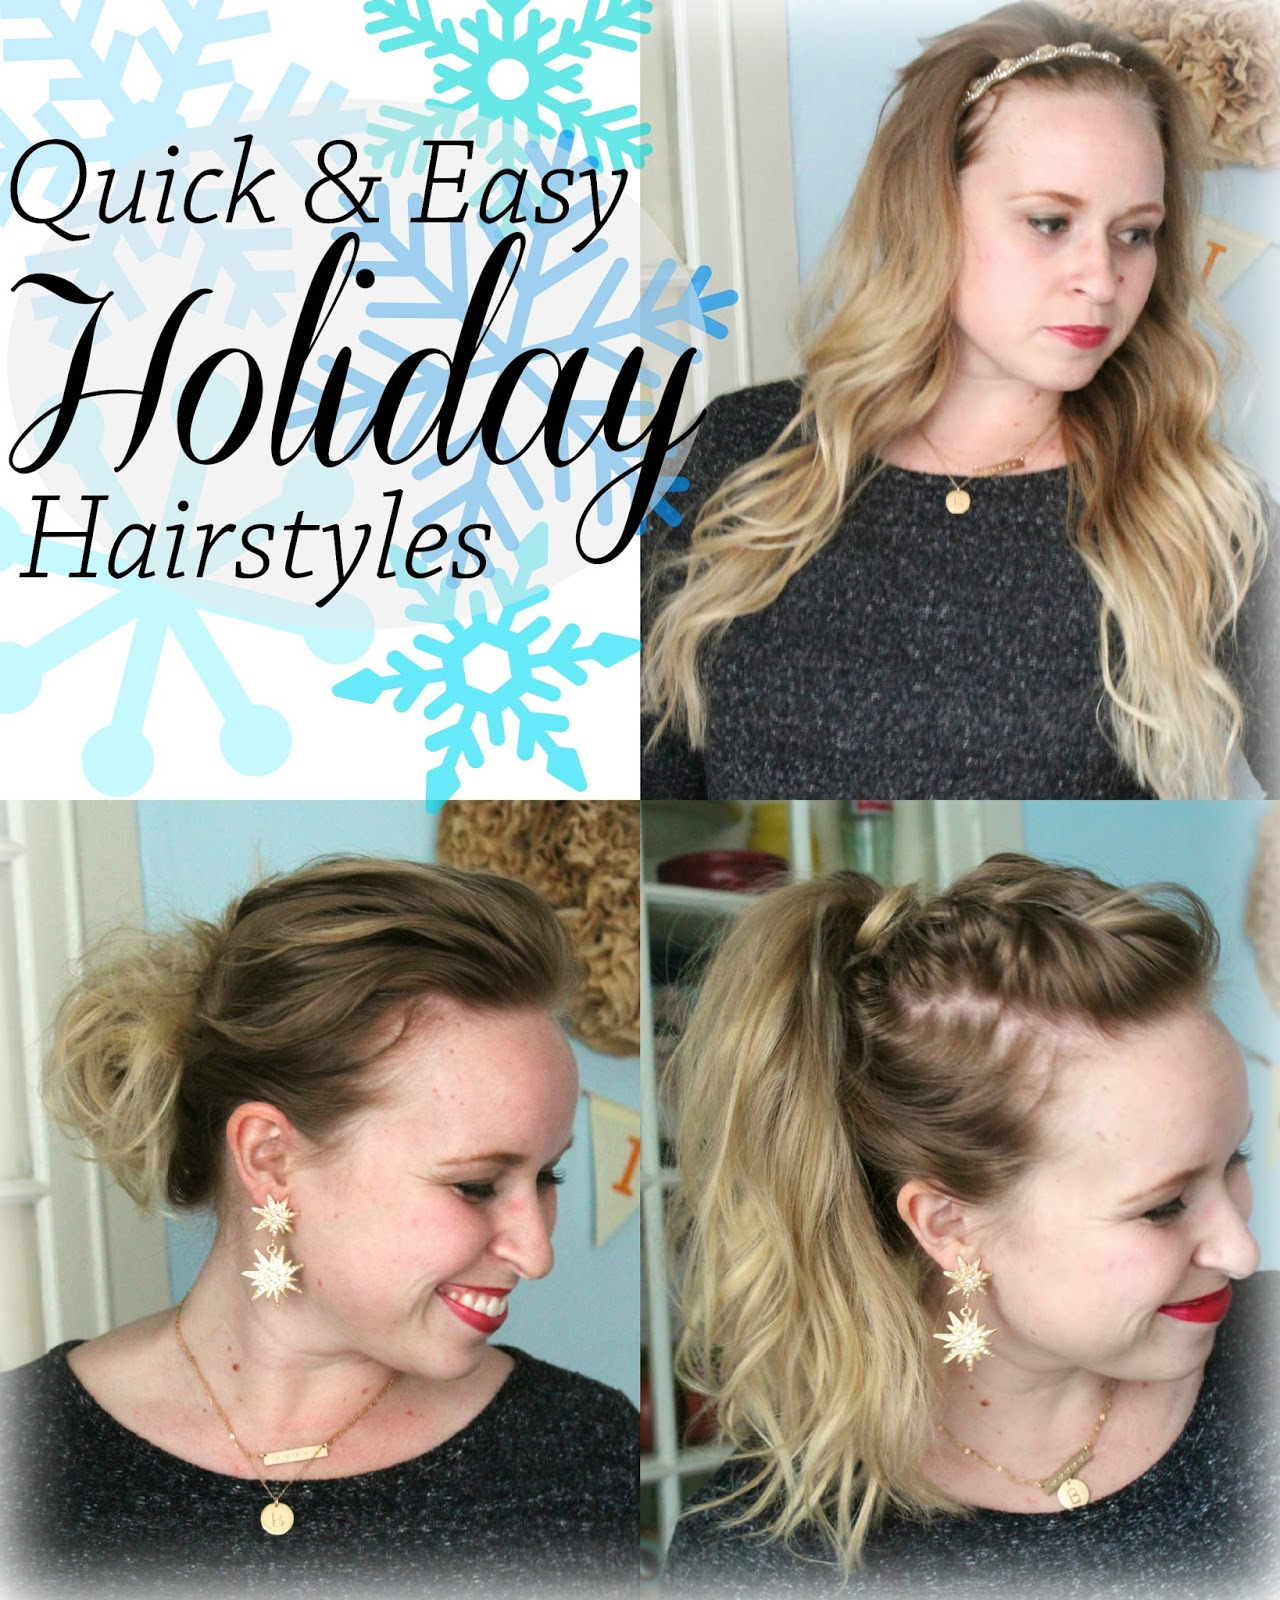 Breezy Days Quick And Easy Holiday Hairstyles